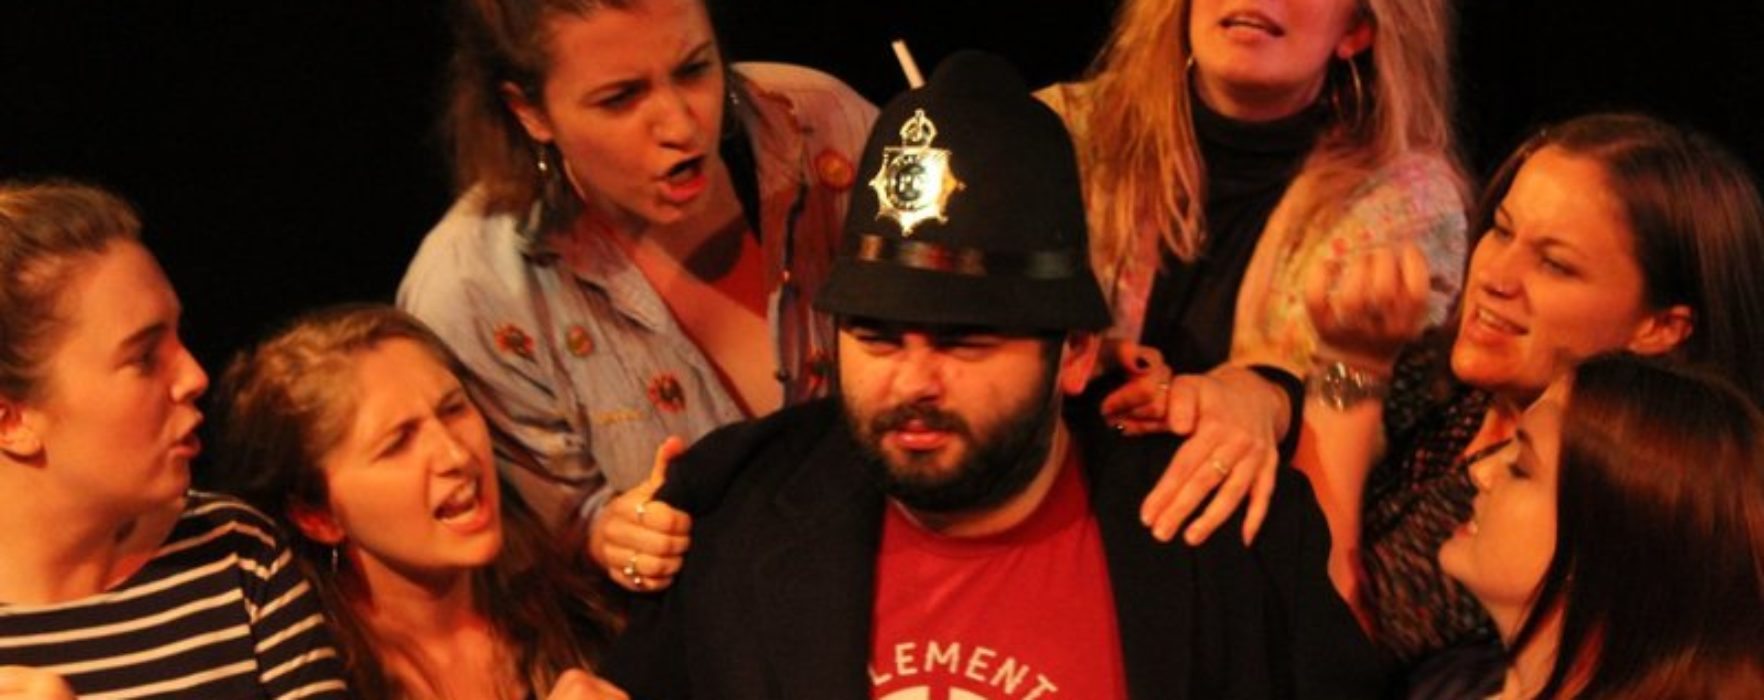 'Violence against women is ever-present in opera' &#8211; The Opera Shack explores domestic abuse in their pocket-size <i>Carmen</i>